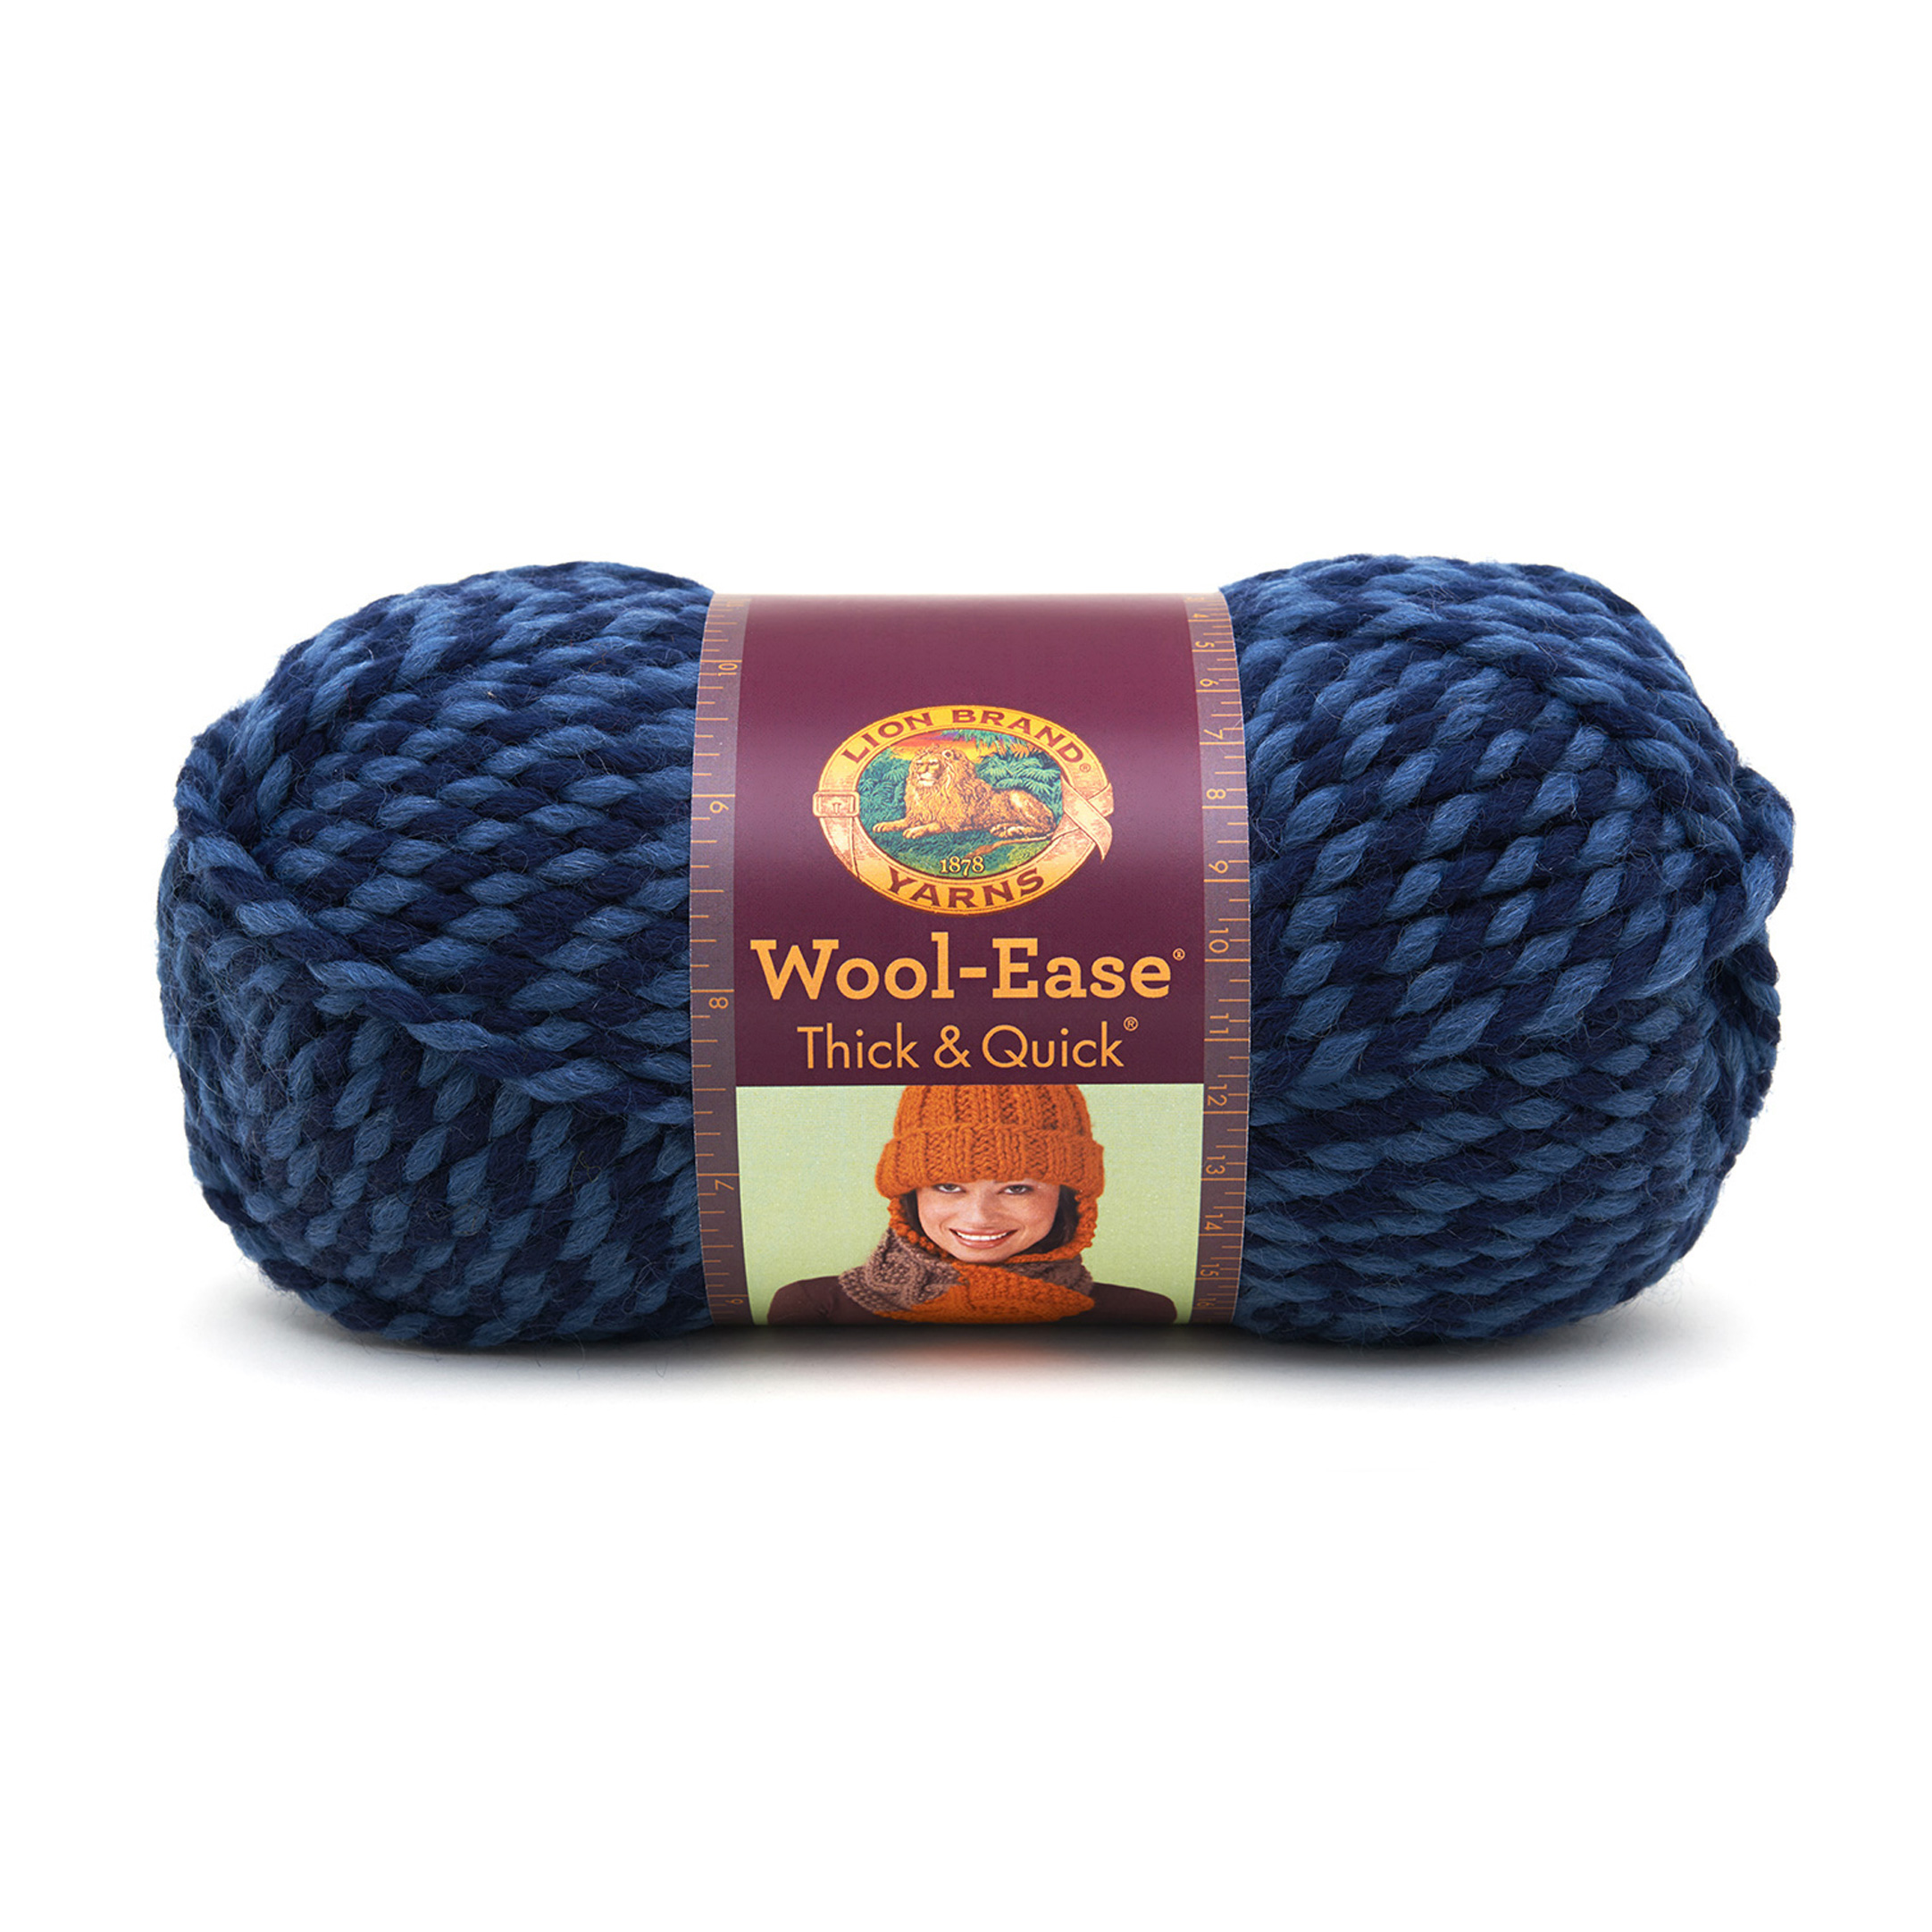 Image of Lion Brand Wool-Ease Thick & Quick Yarn (194) Denim Twist